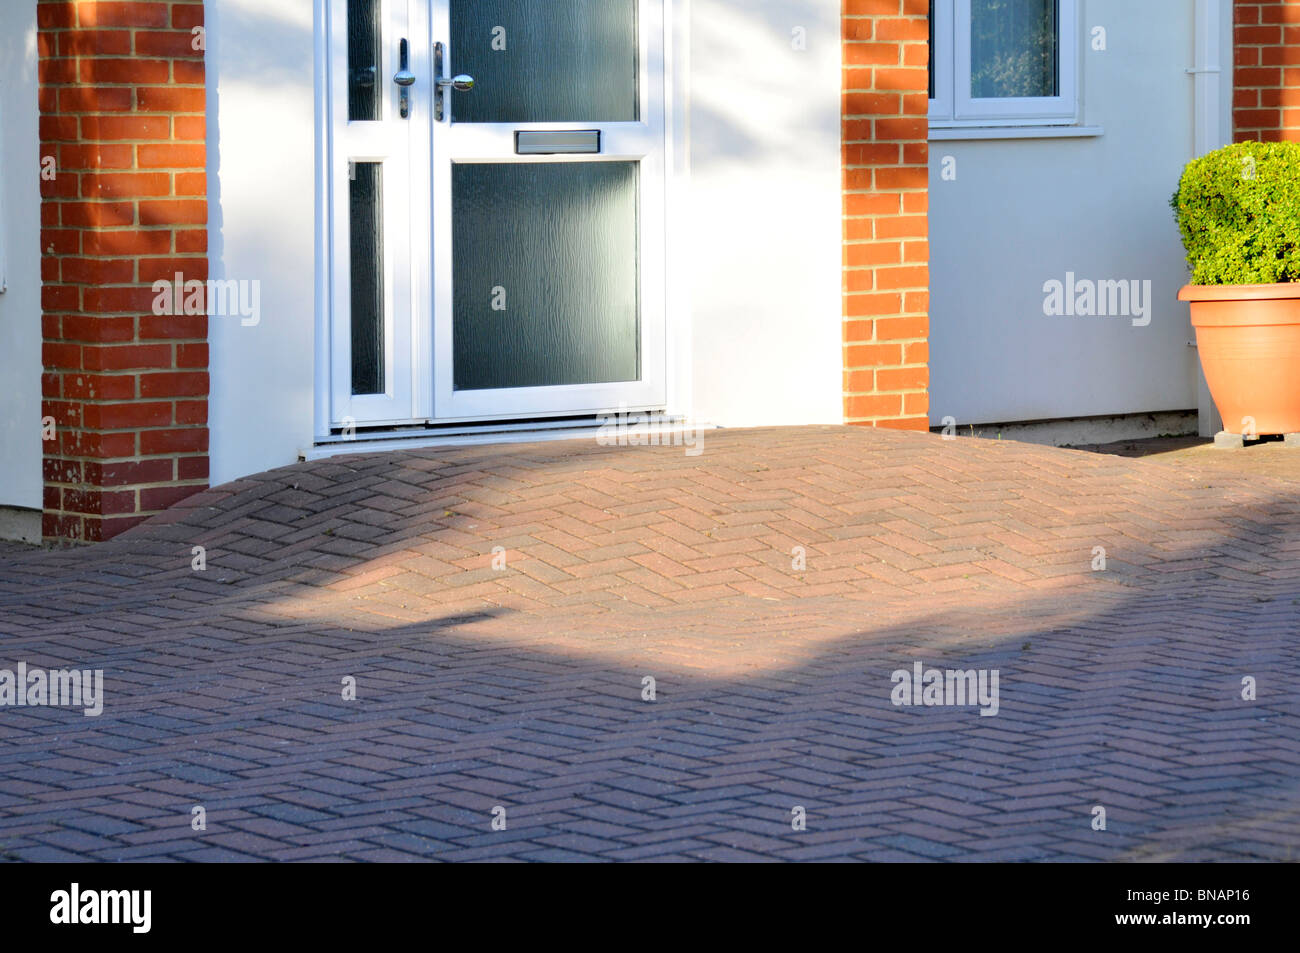 Block paving r& to house front door for disabled wheelchair access & Block paving ramp to house front door for disabled wheelchair access ...